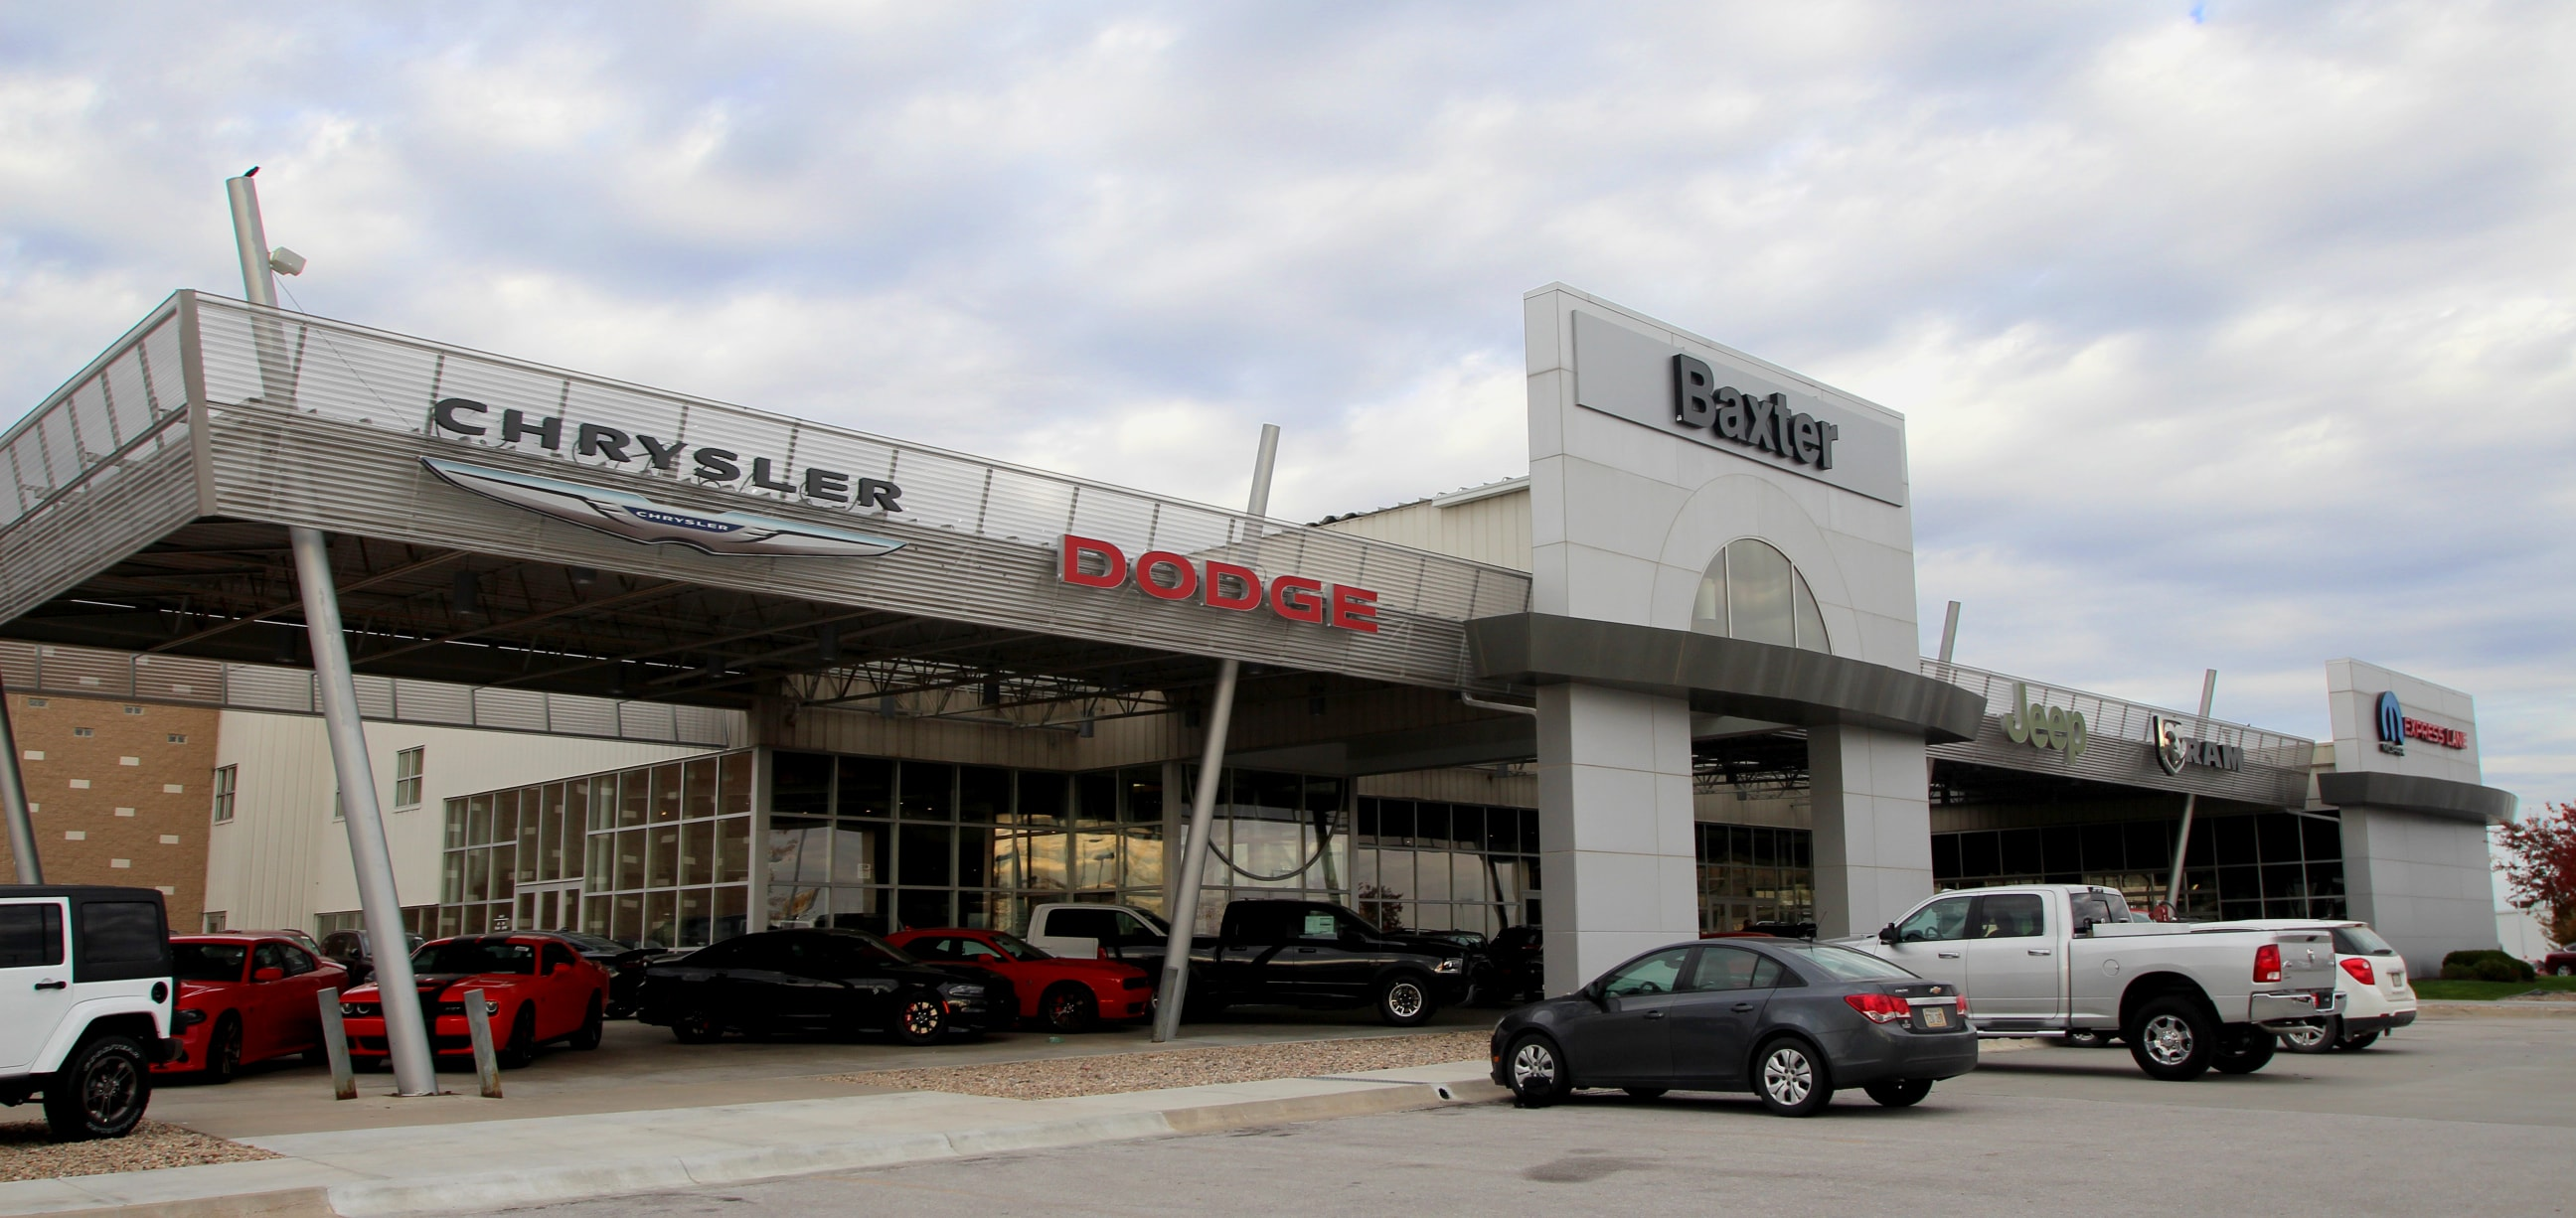 About us baxter chrysler dodge jeep ram lincoln for Department of motor vehicles lincoln nebraska